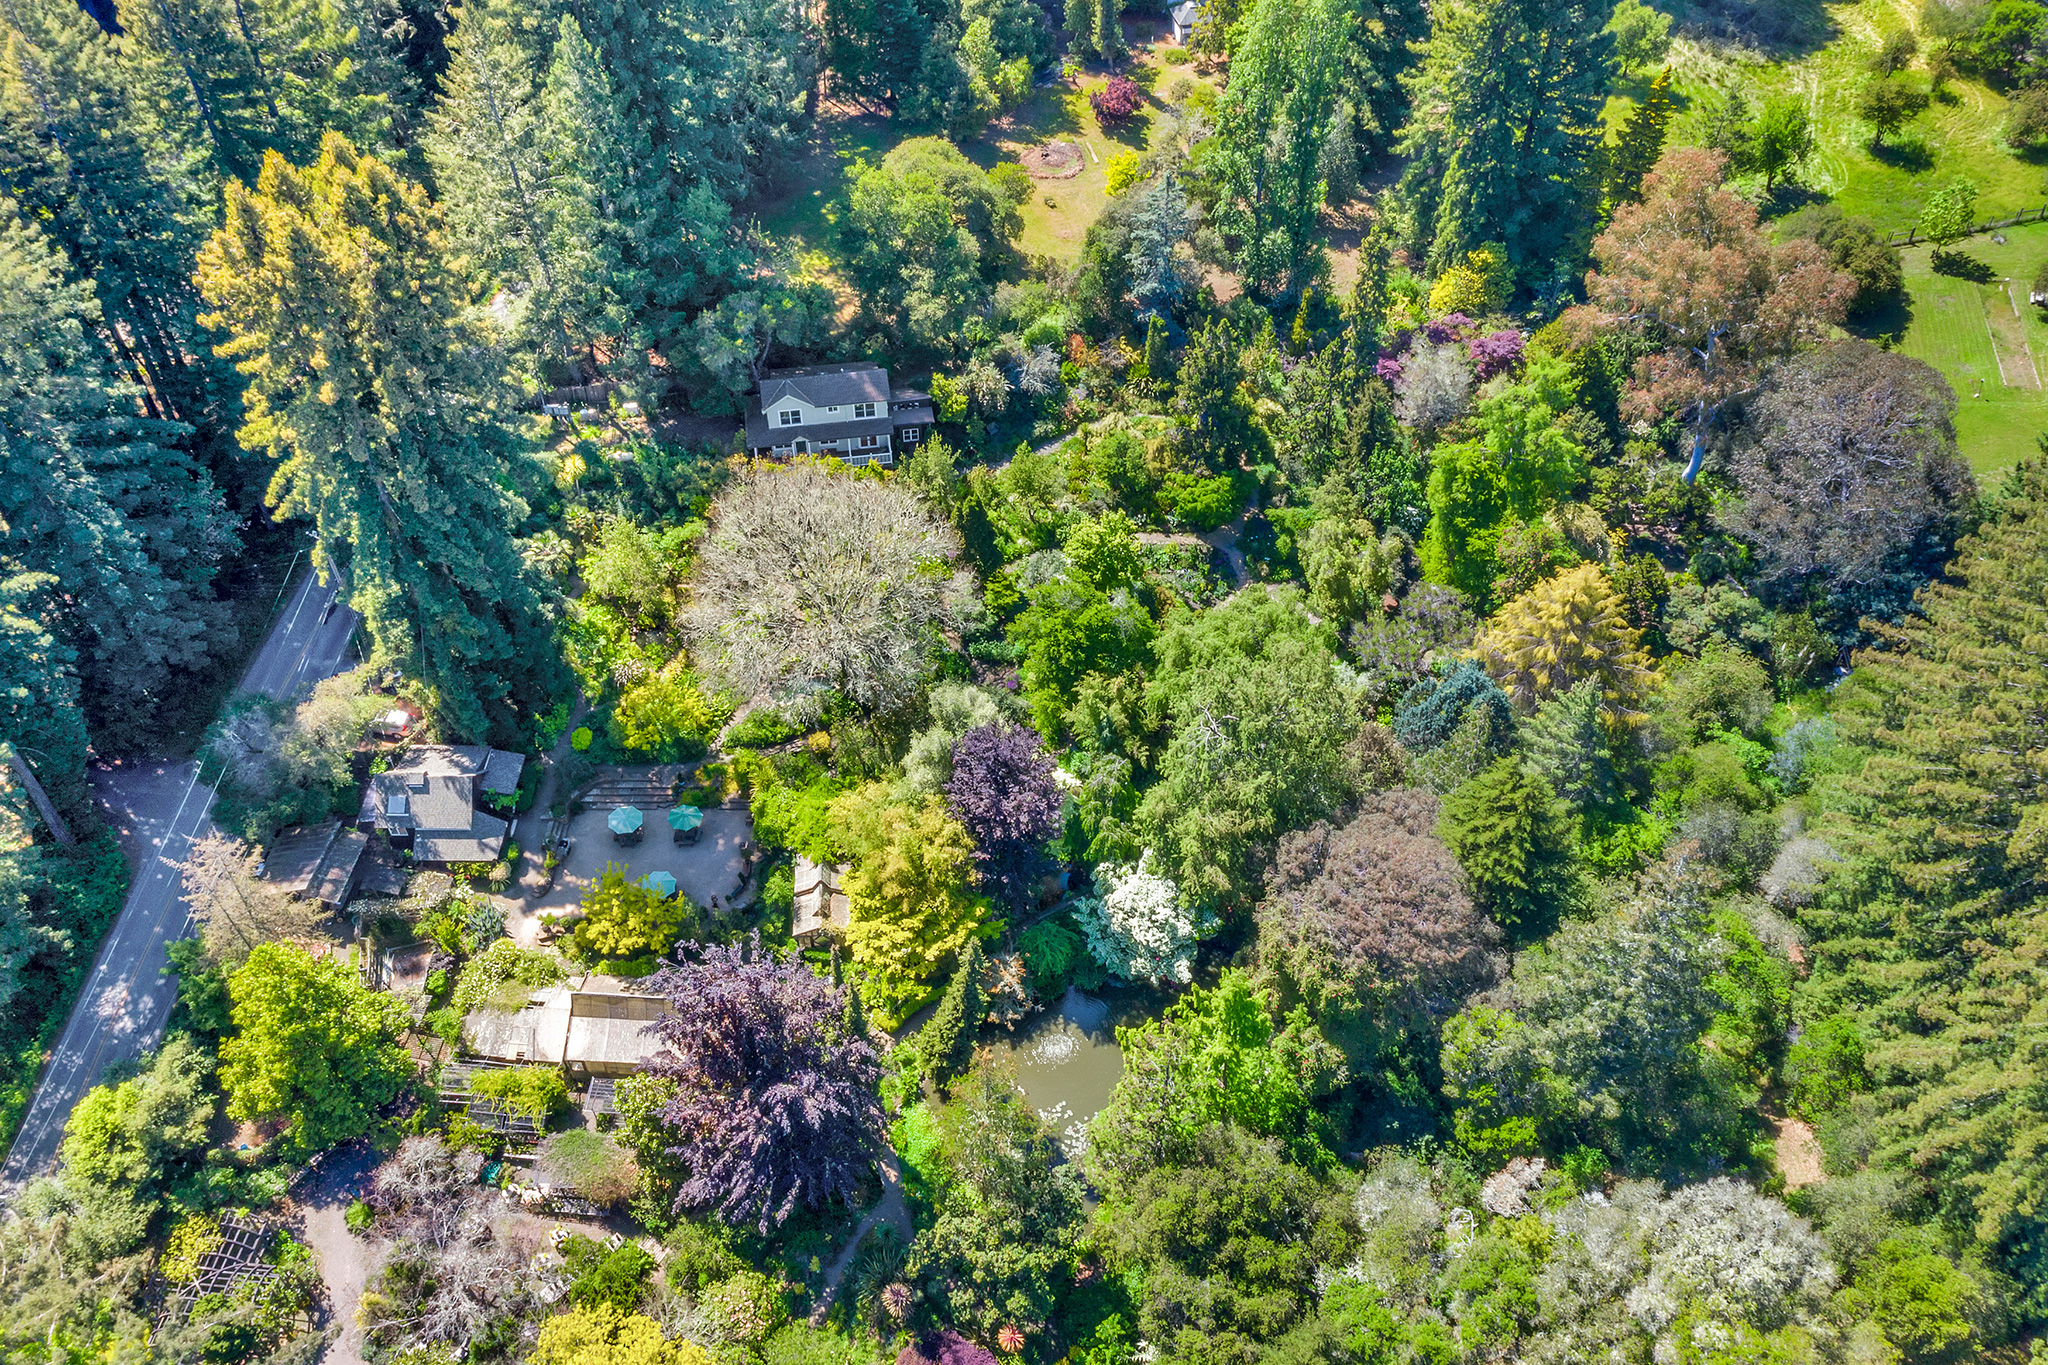 An Iconic Garden Is for Sale: Why I Dream of Buying This California Landmark